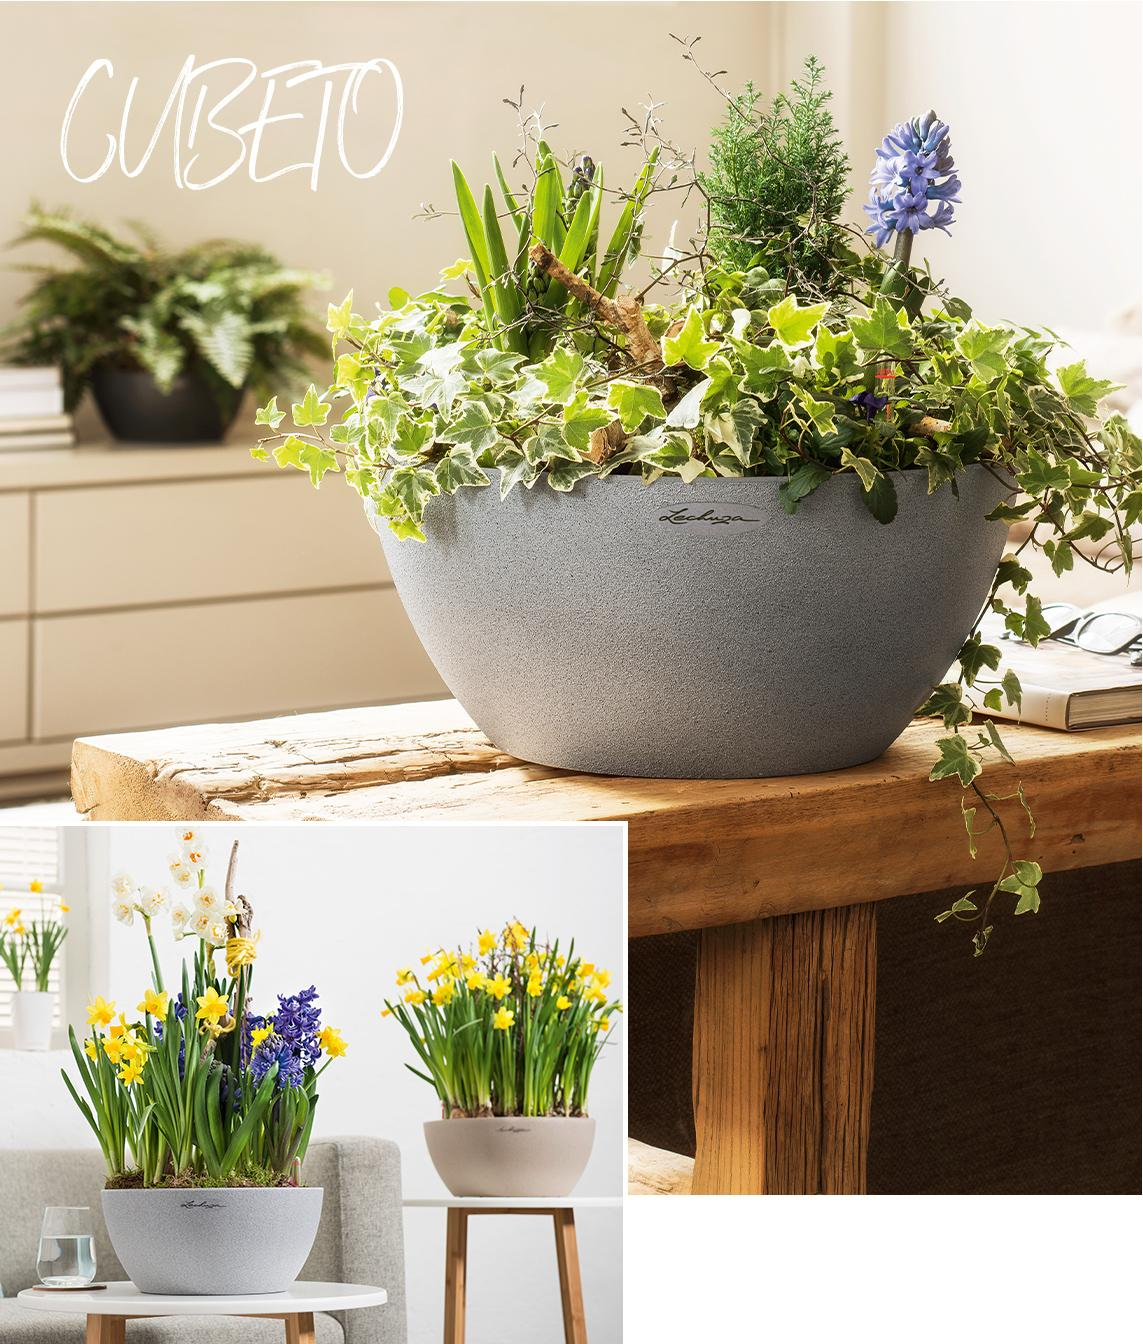 Grey stone-look planter planted with lovely early bloomers such as daffodil and hyacinth